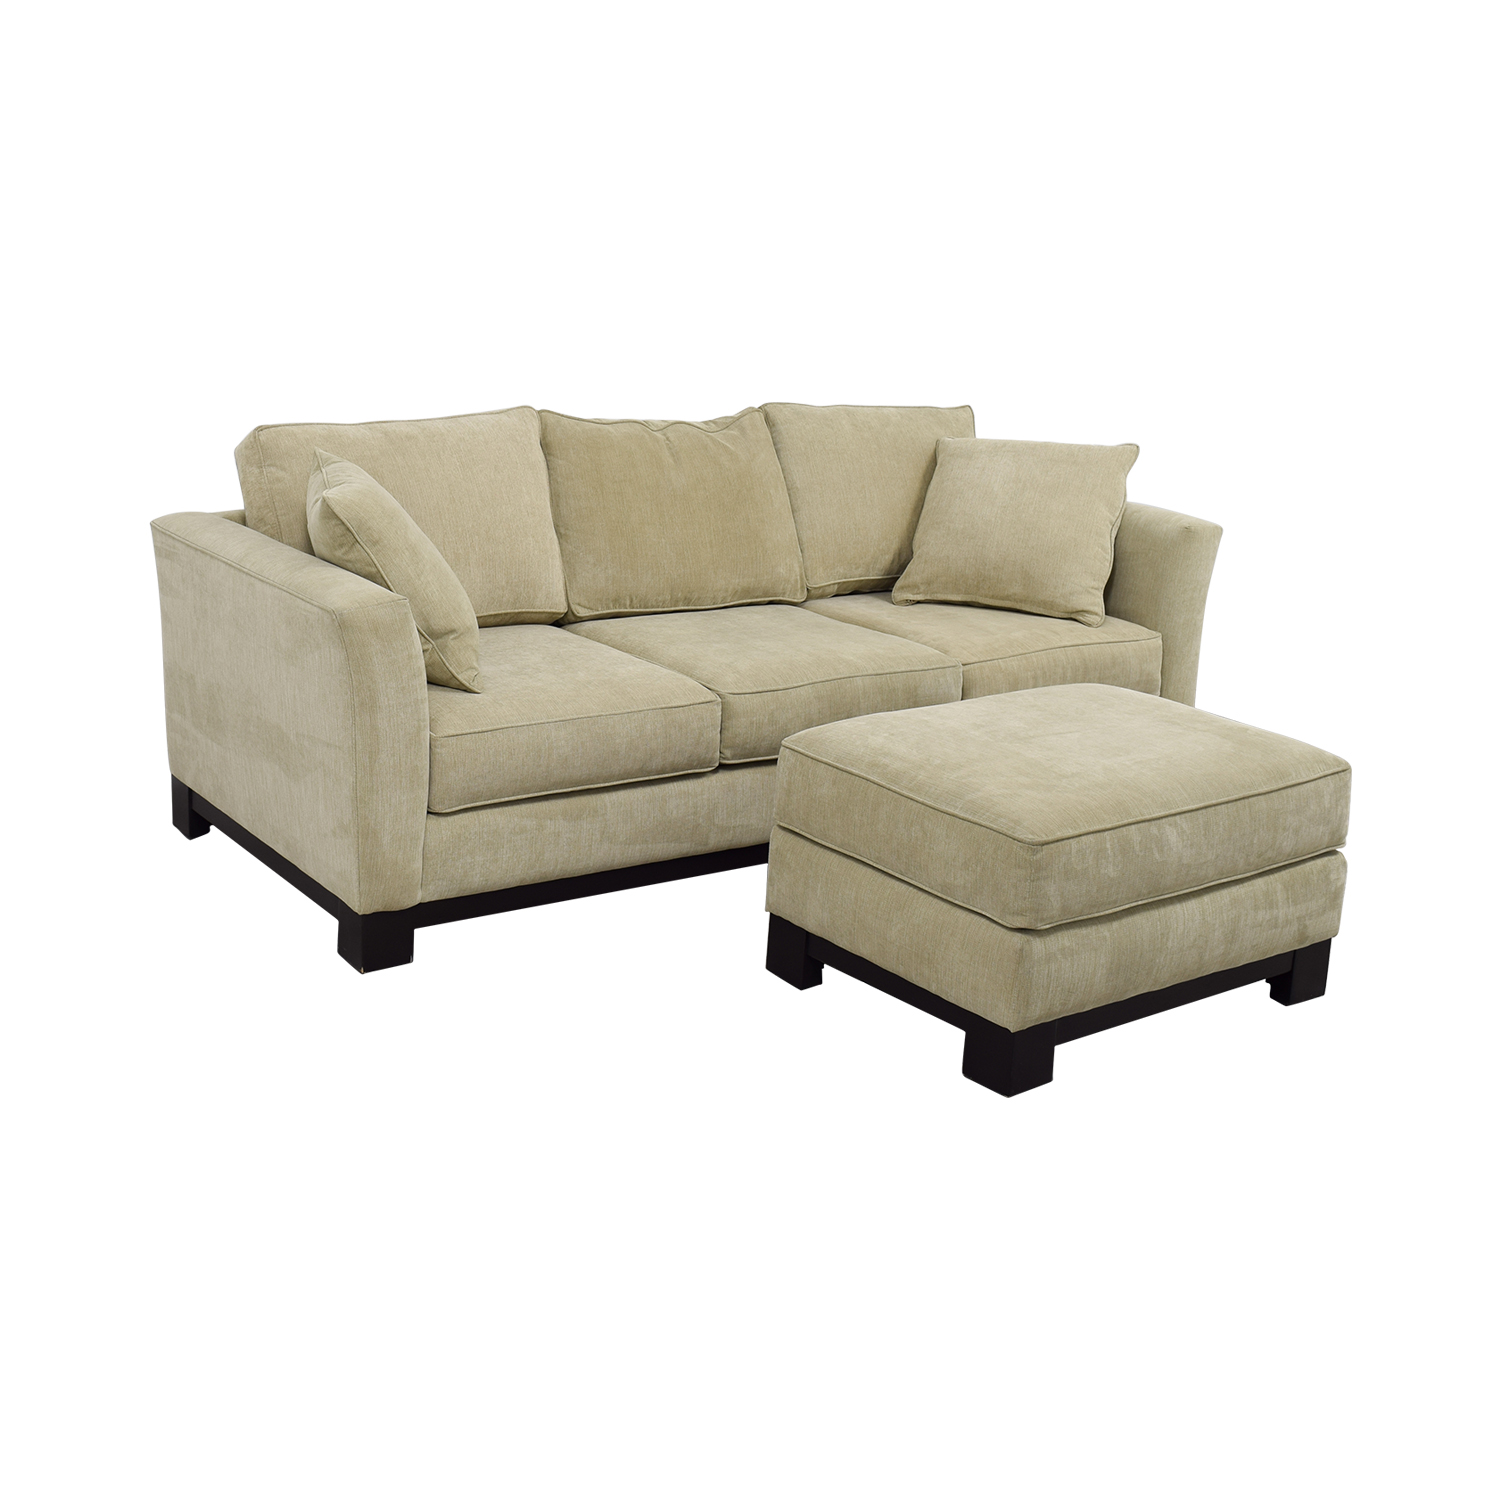 buy Macy's Grey Fabric Couch and Large Ottoman Macy's Sofas